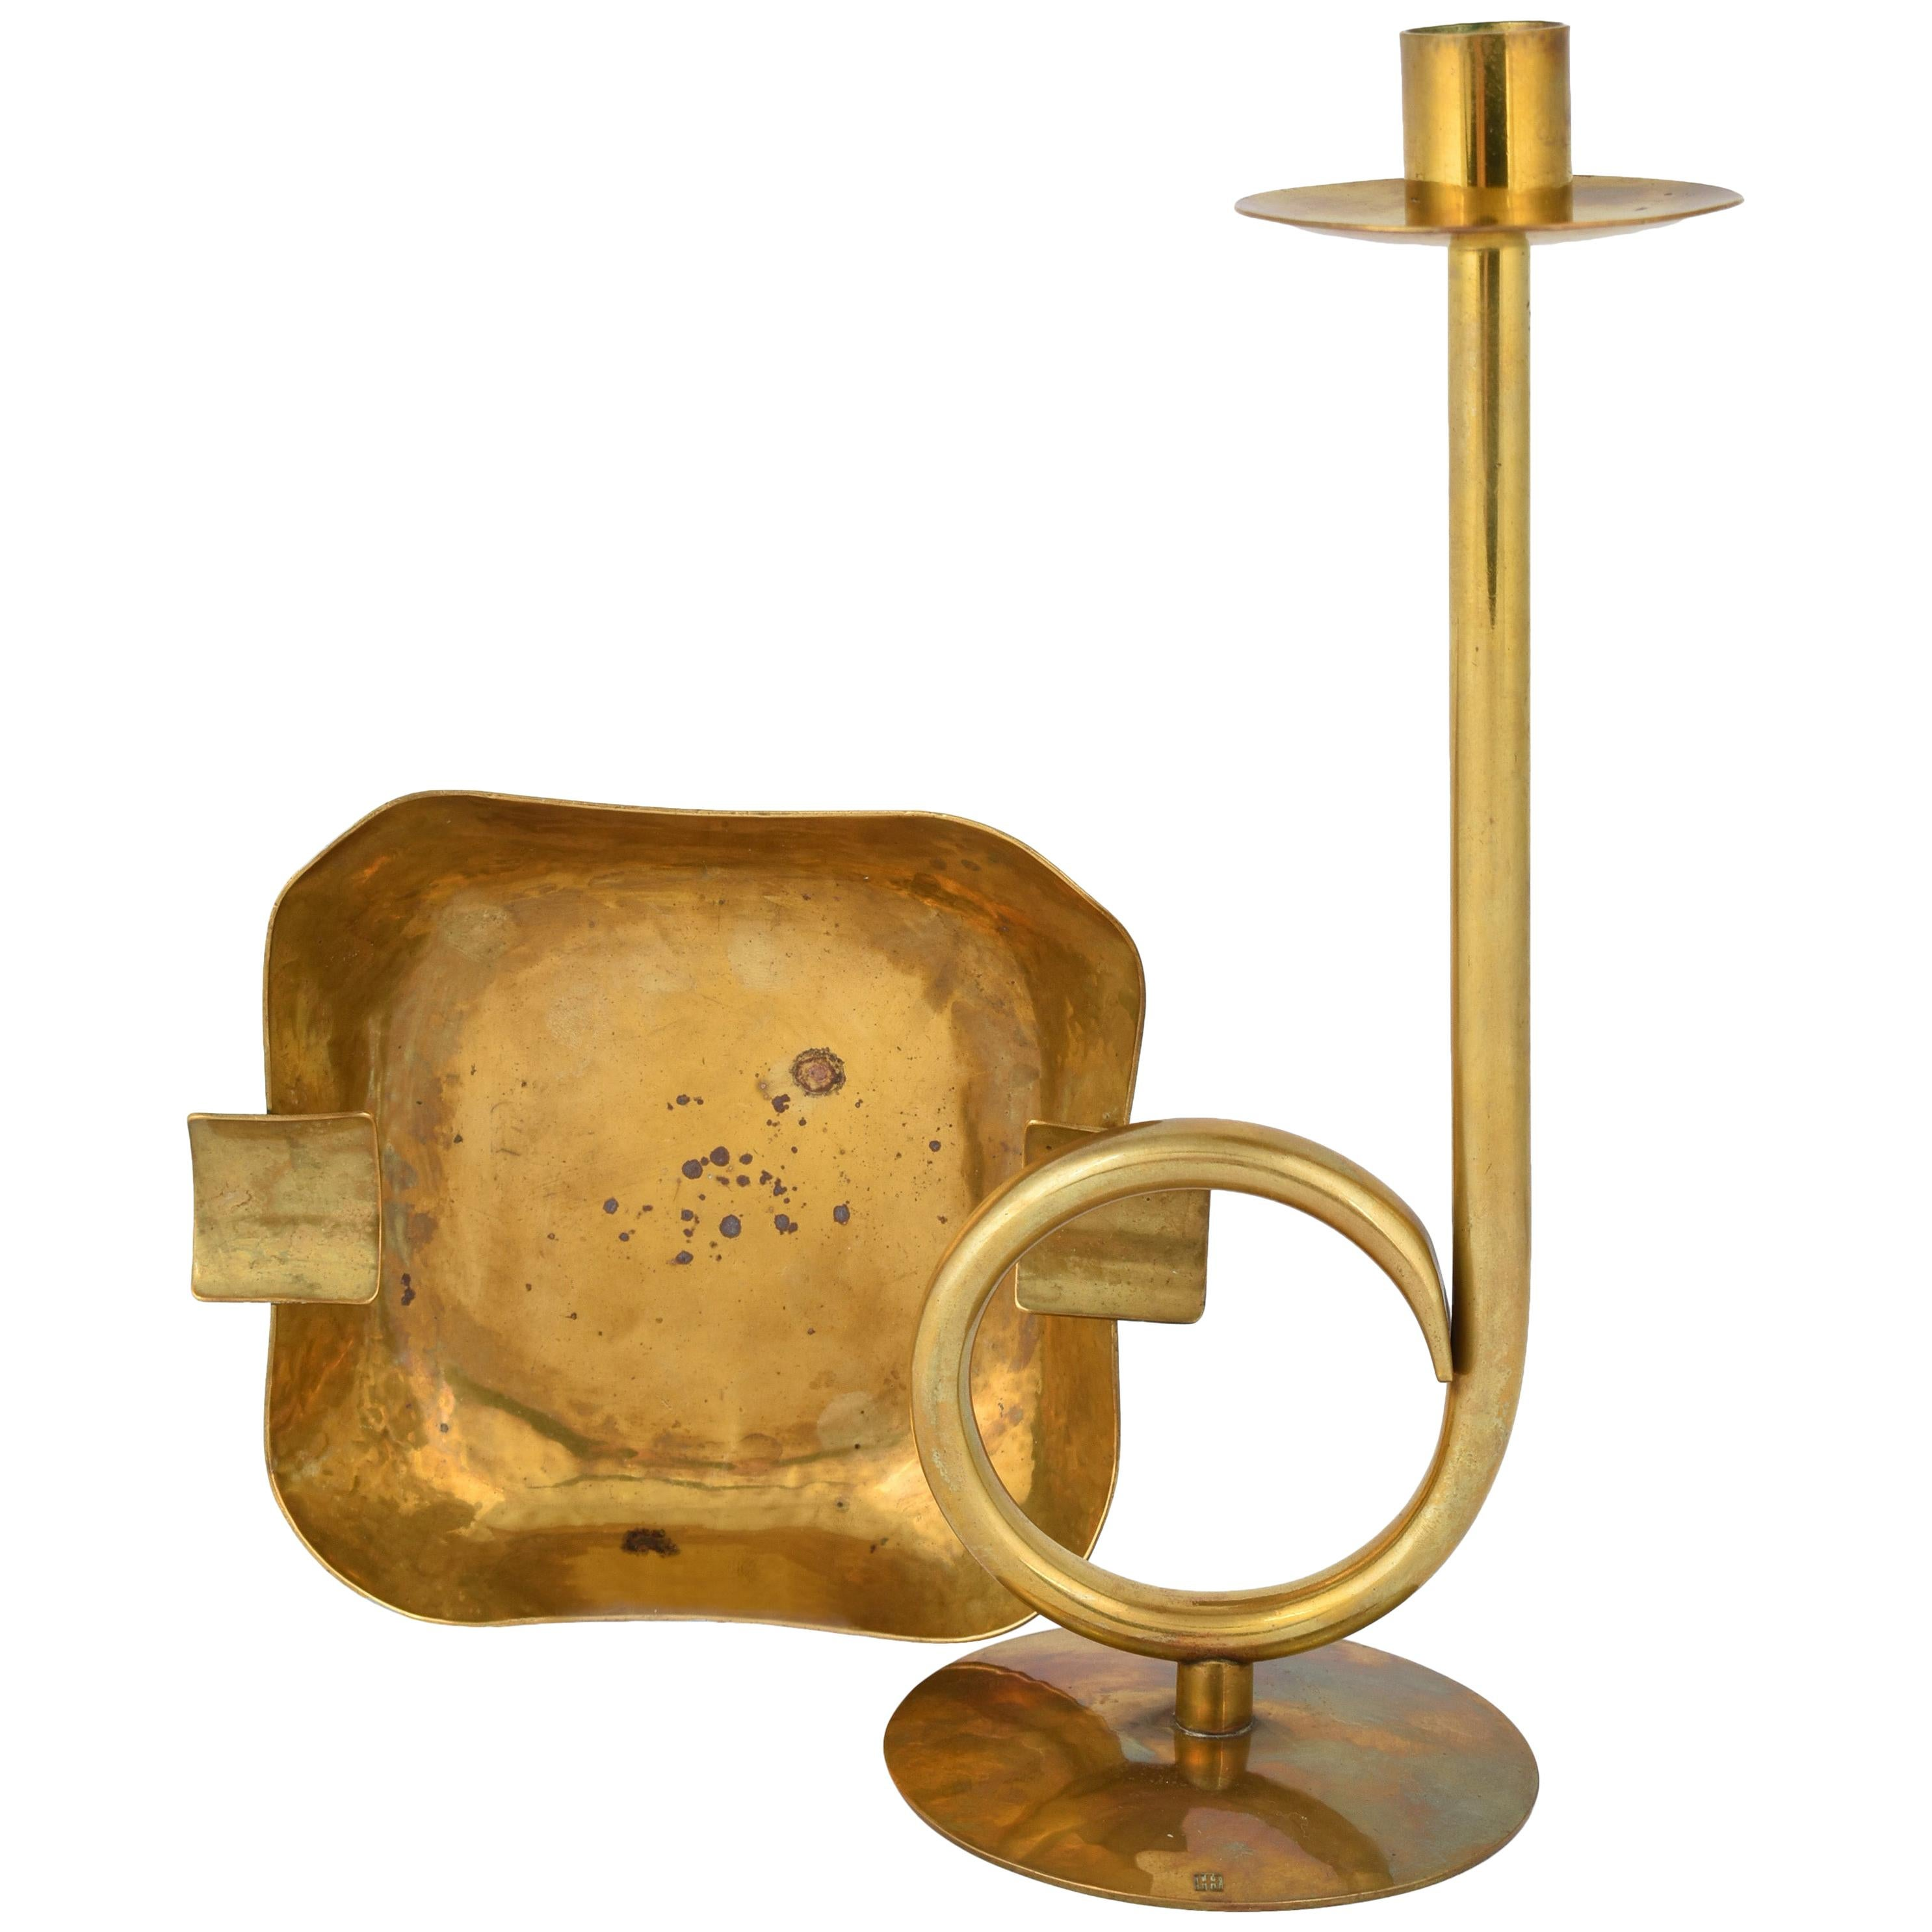 Vintage Brass Candlestick and Ashtray by Hayno Focken - Germany 1930s